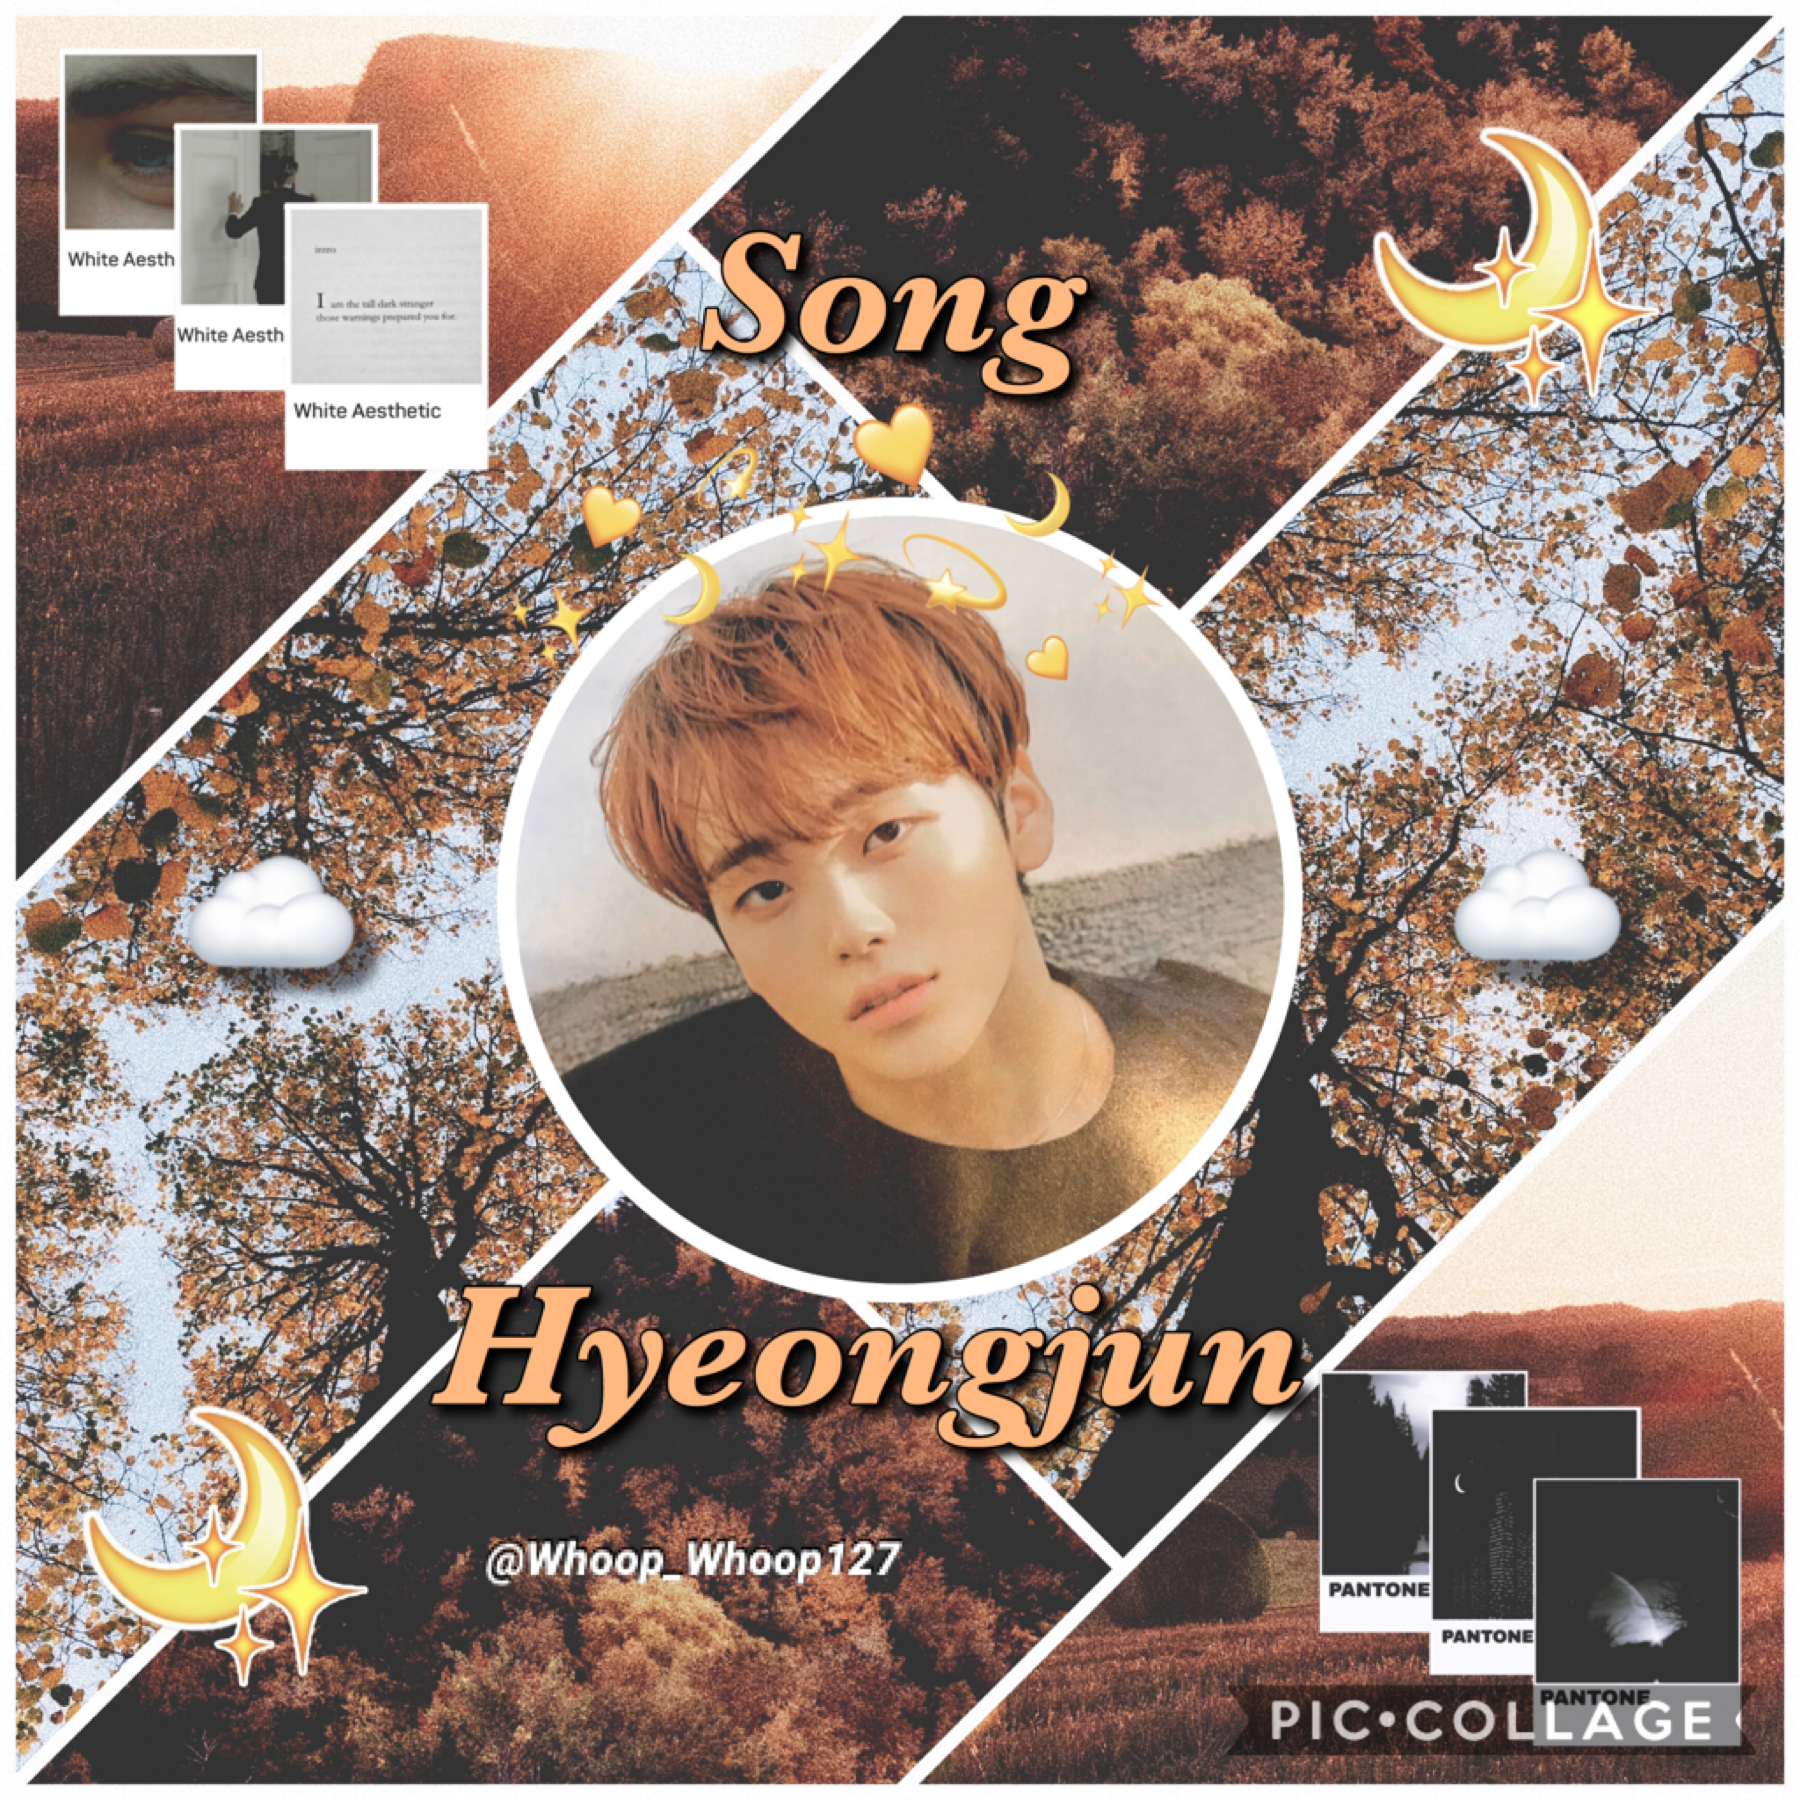 """•🚒• Ok guys don't come after me ik I posted this edit on @Kpop_Birthdays. Anyways I made this edit for X1 Amino and bc it's baby Hyeongjun's bday🥺💞 Thank you guys for 700 followers!!!❤️ also my likes are like """"it's going down, I'm telling timberrr"""" but eh"""